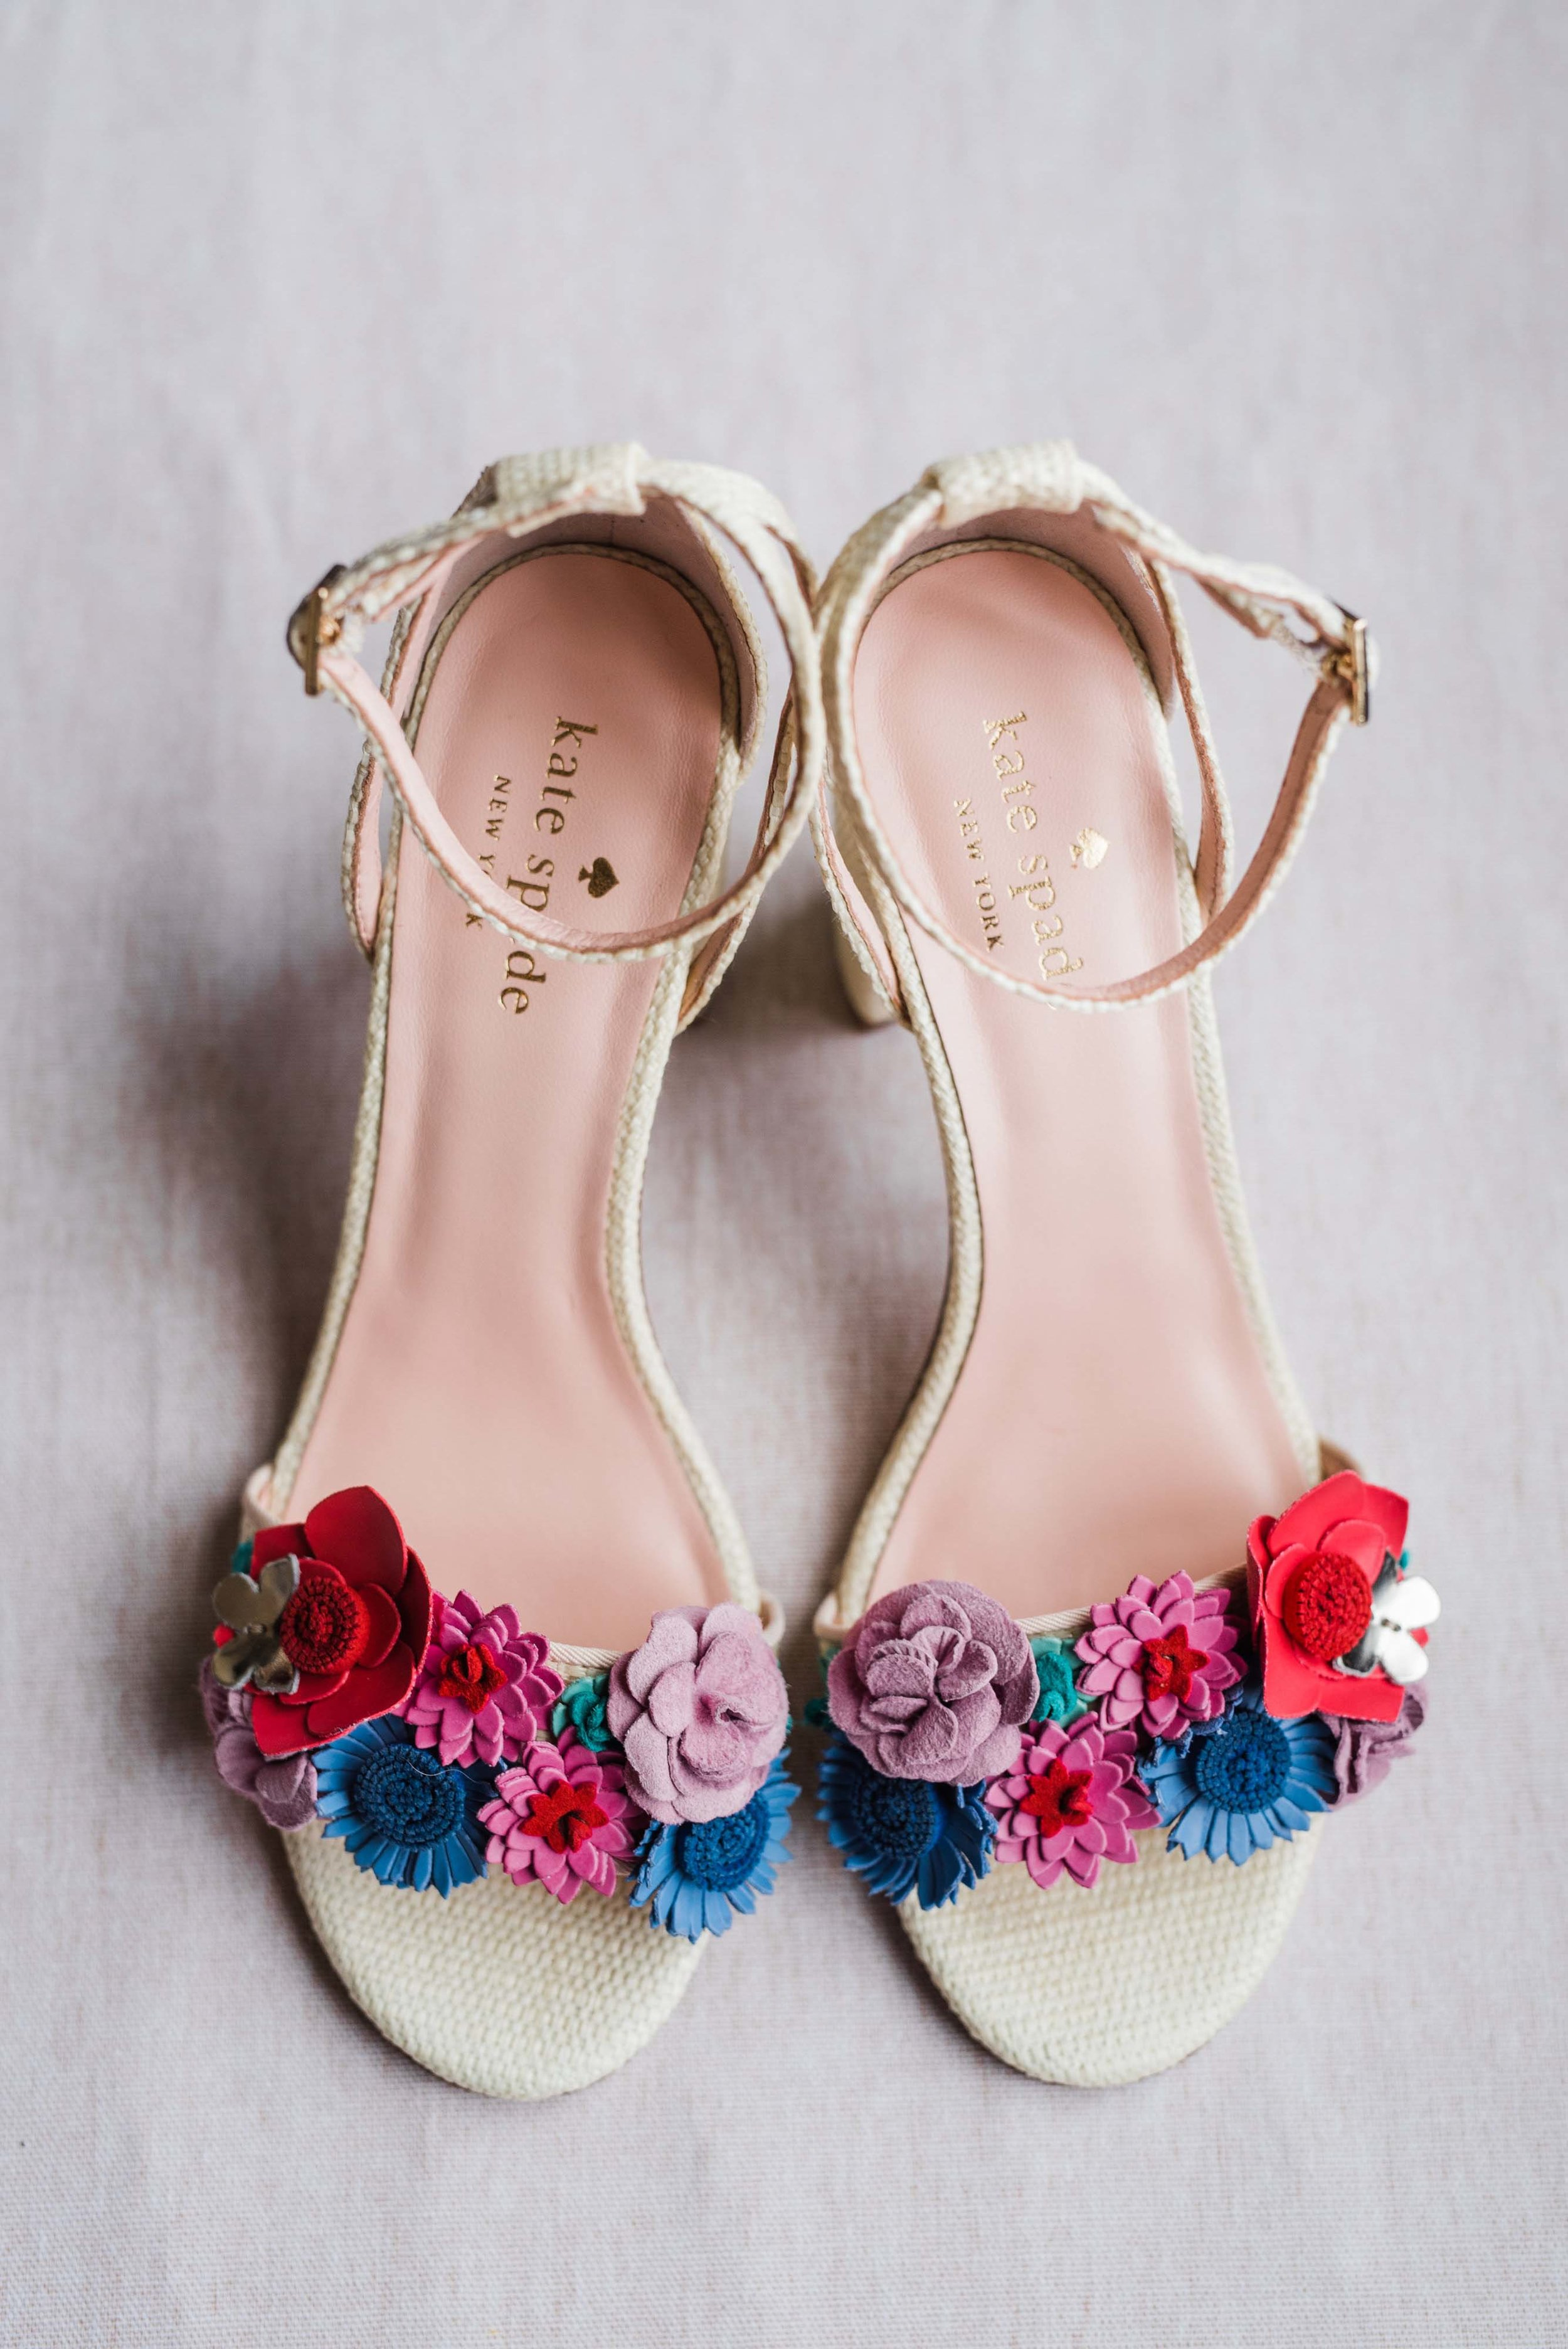 ace hotel wedding pittsburgh flower shoes